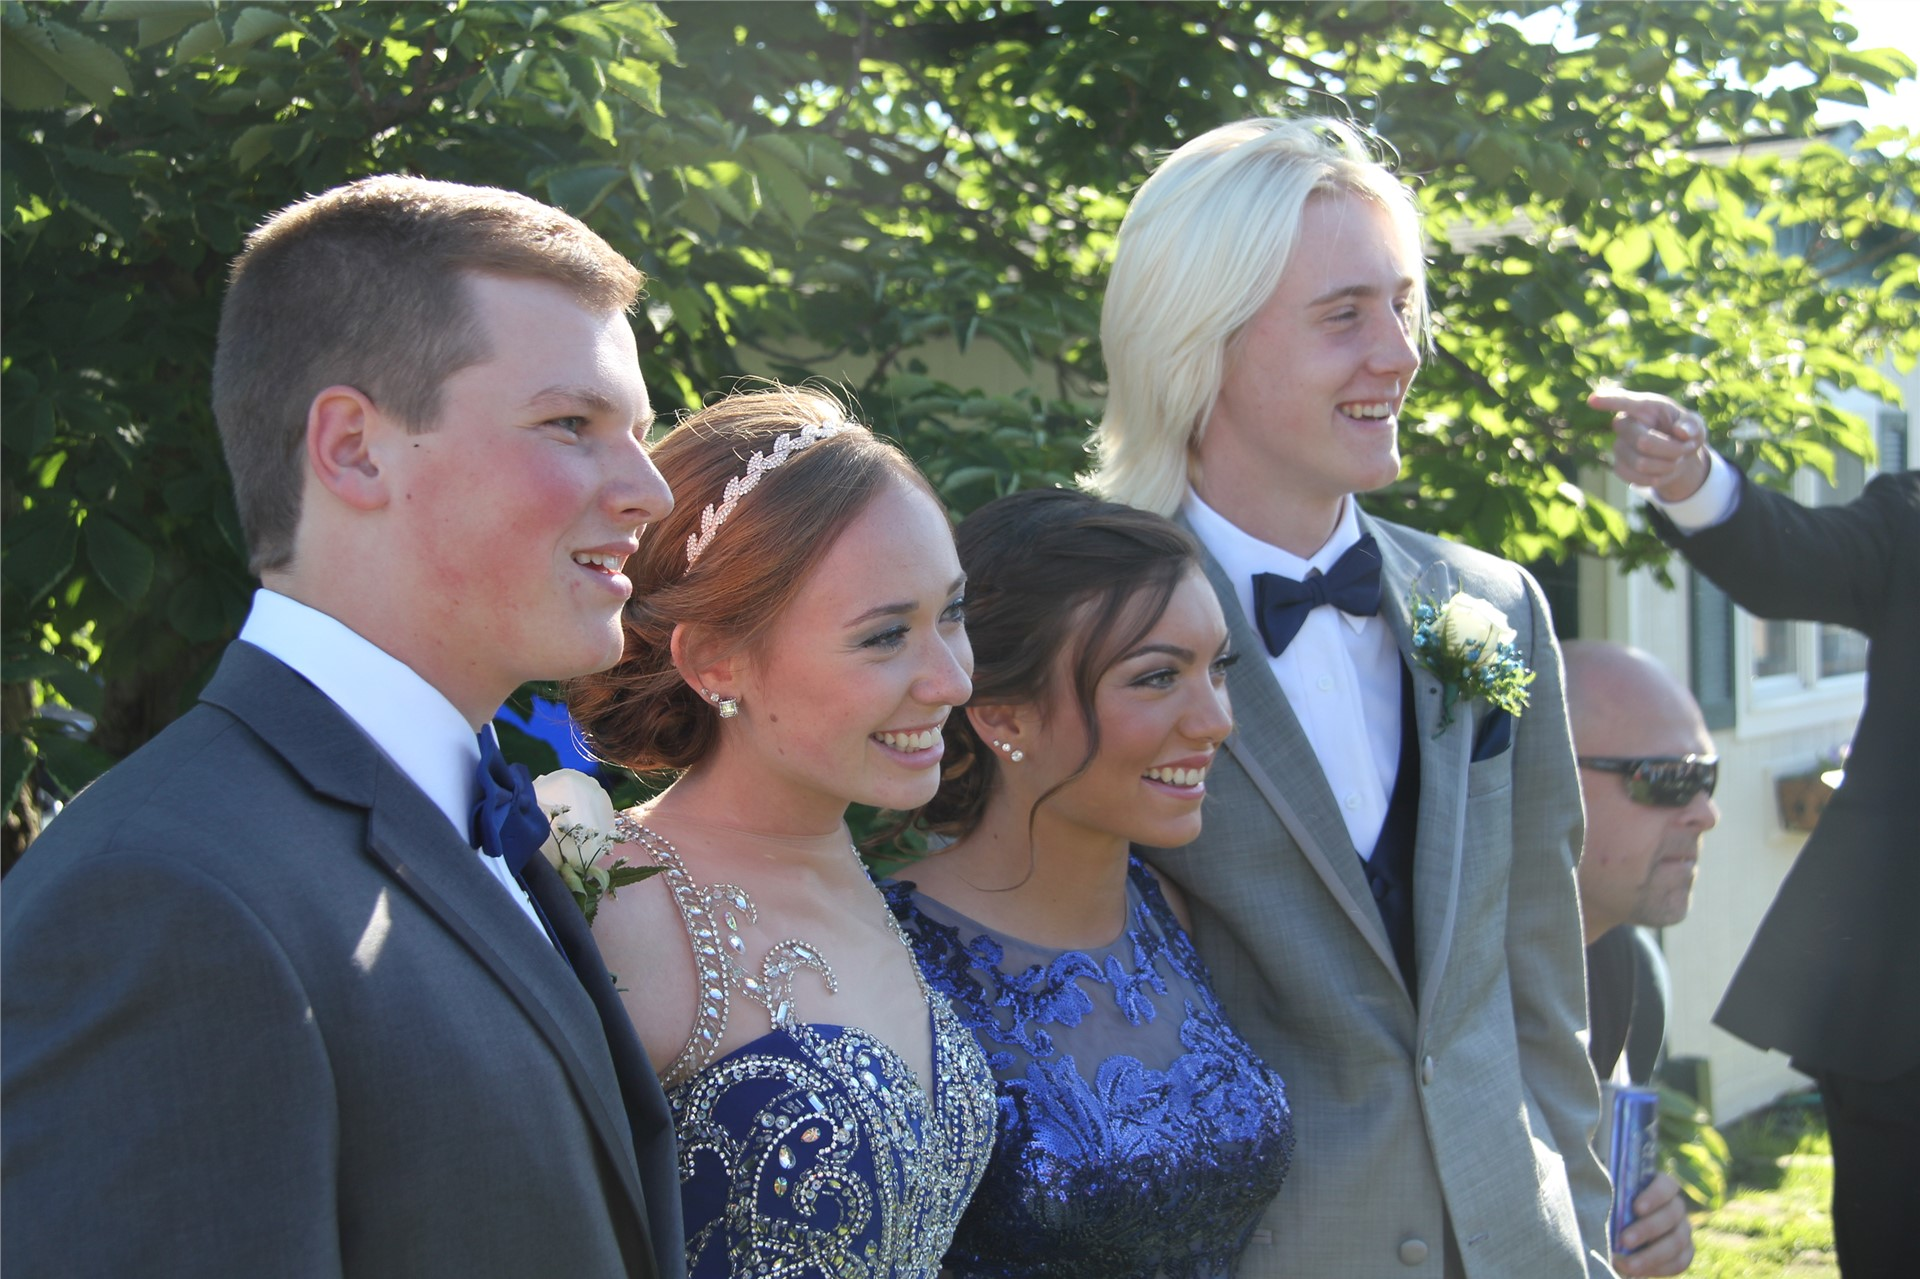 Students pose for pictures before prom